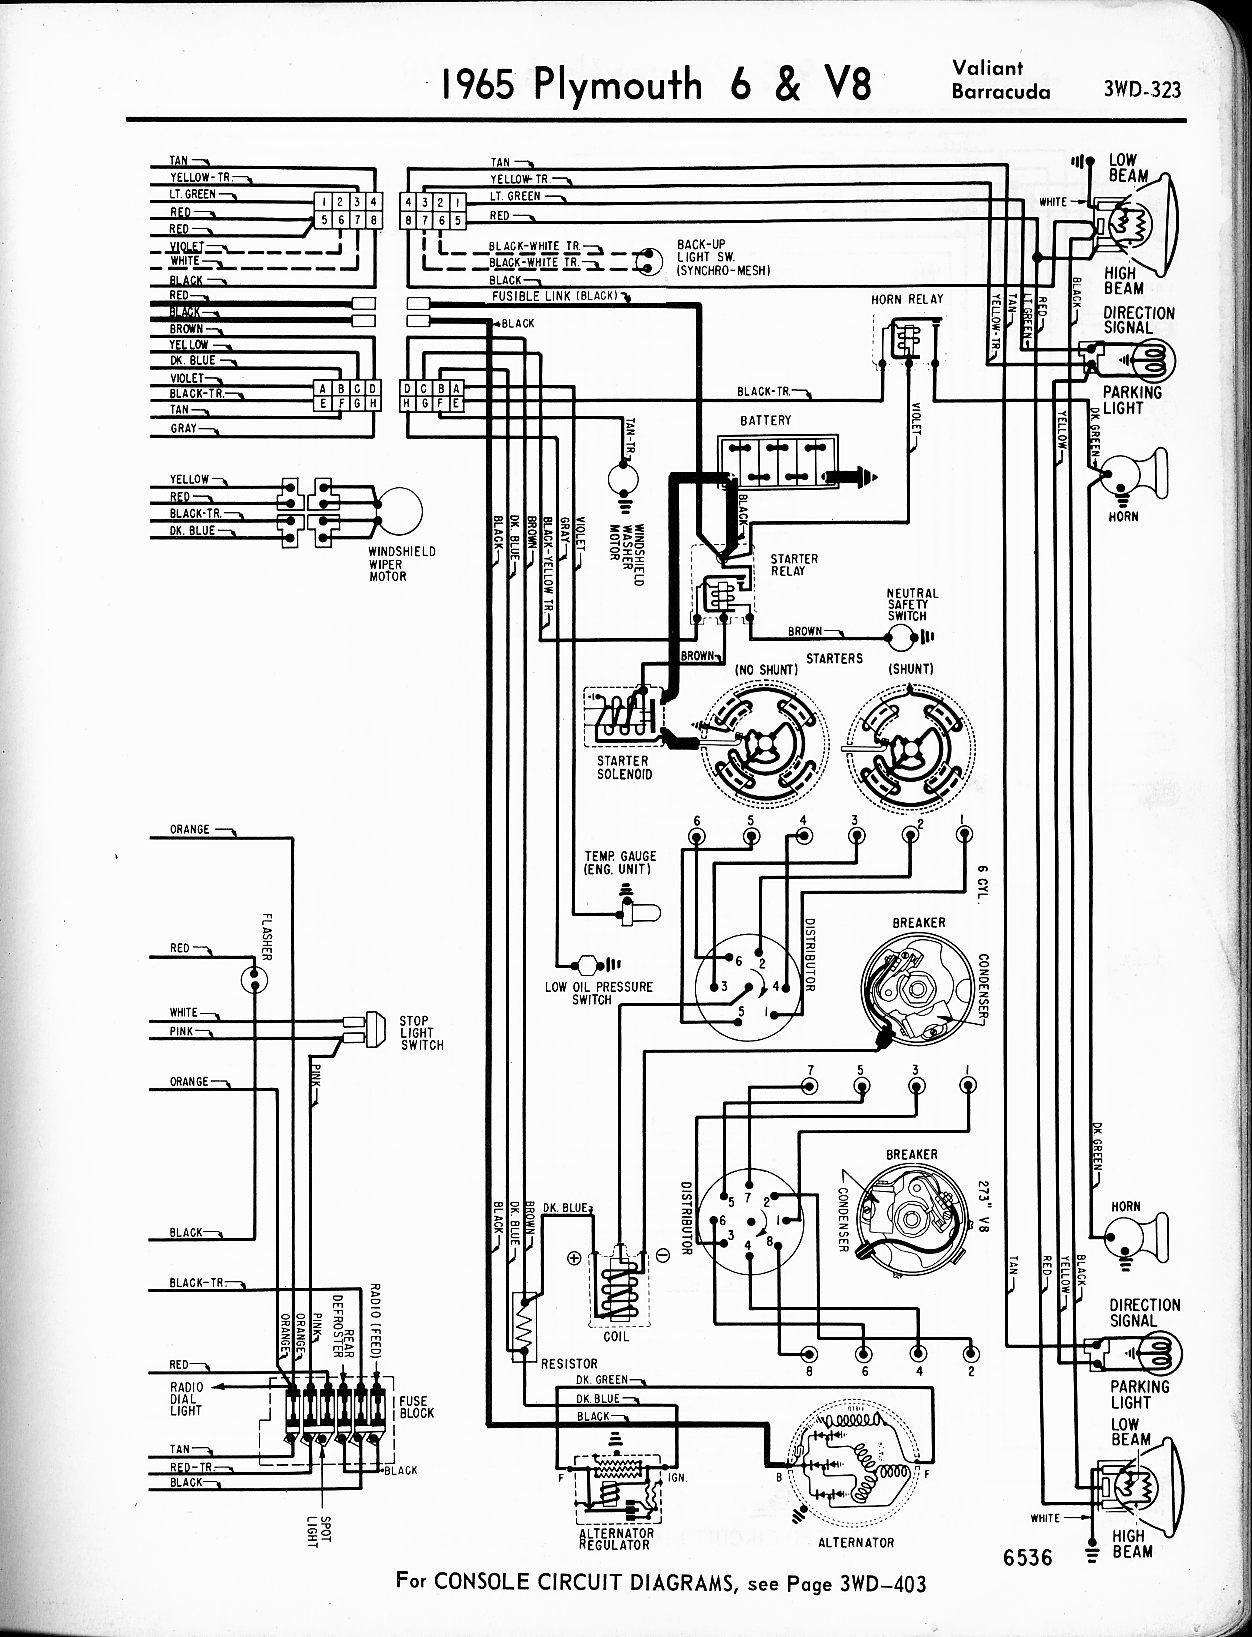 MWire5765 323?resize\\\=665%2C869 dtx gnp 40048 wiring diagram dtx wiring diagrams collection  at crackthecode.co